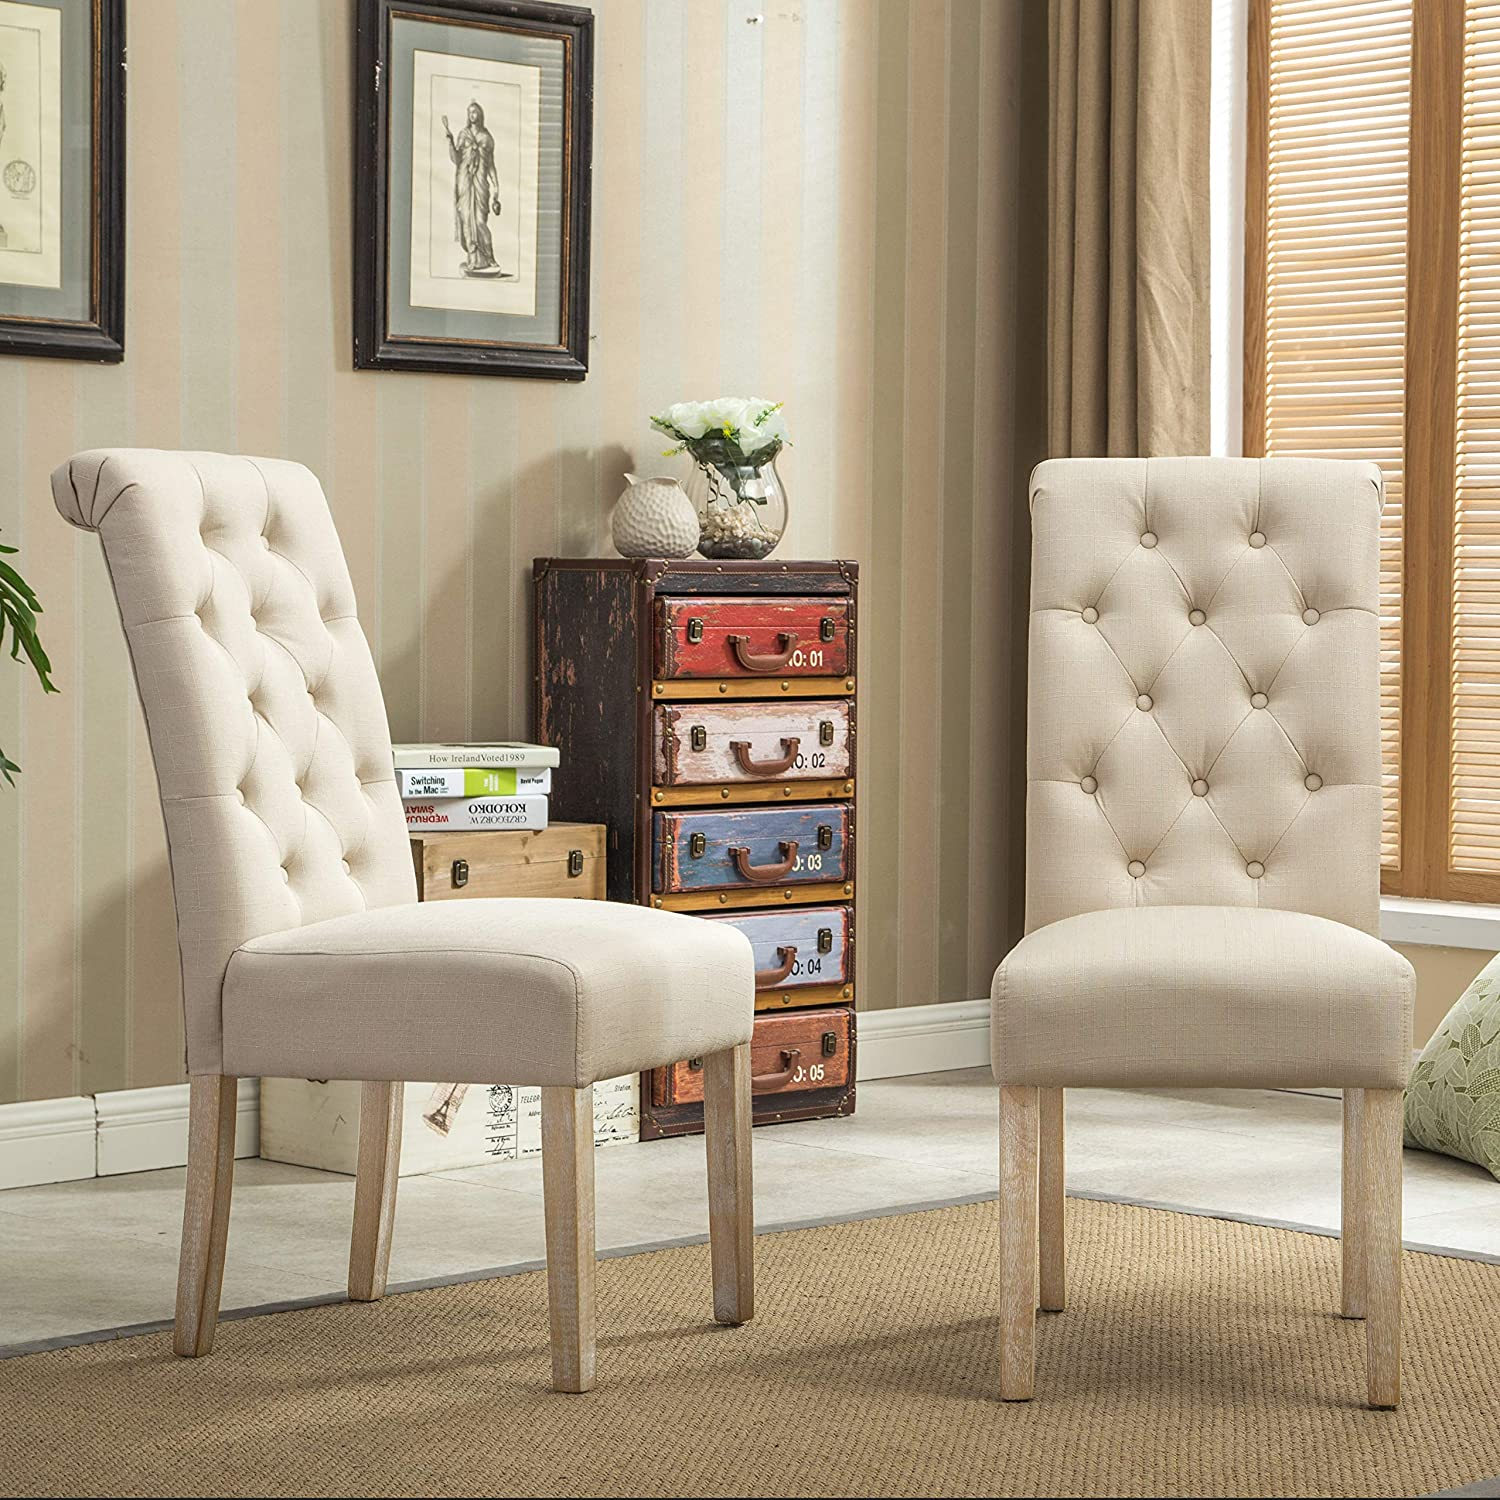 Best for Simplicity: Roundhill Furniture Dining Chairs.